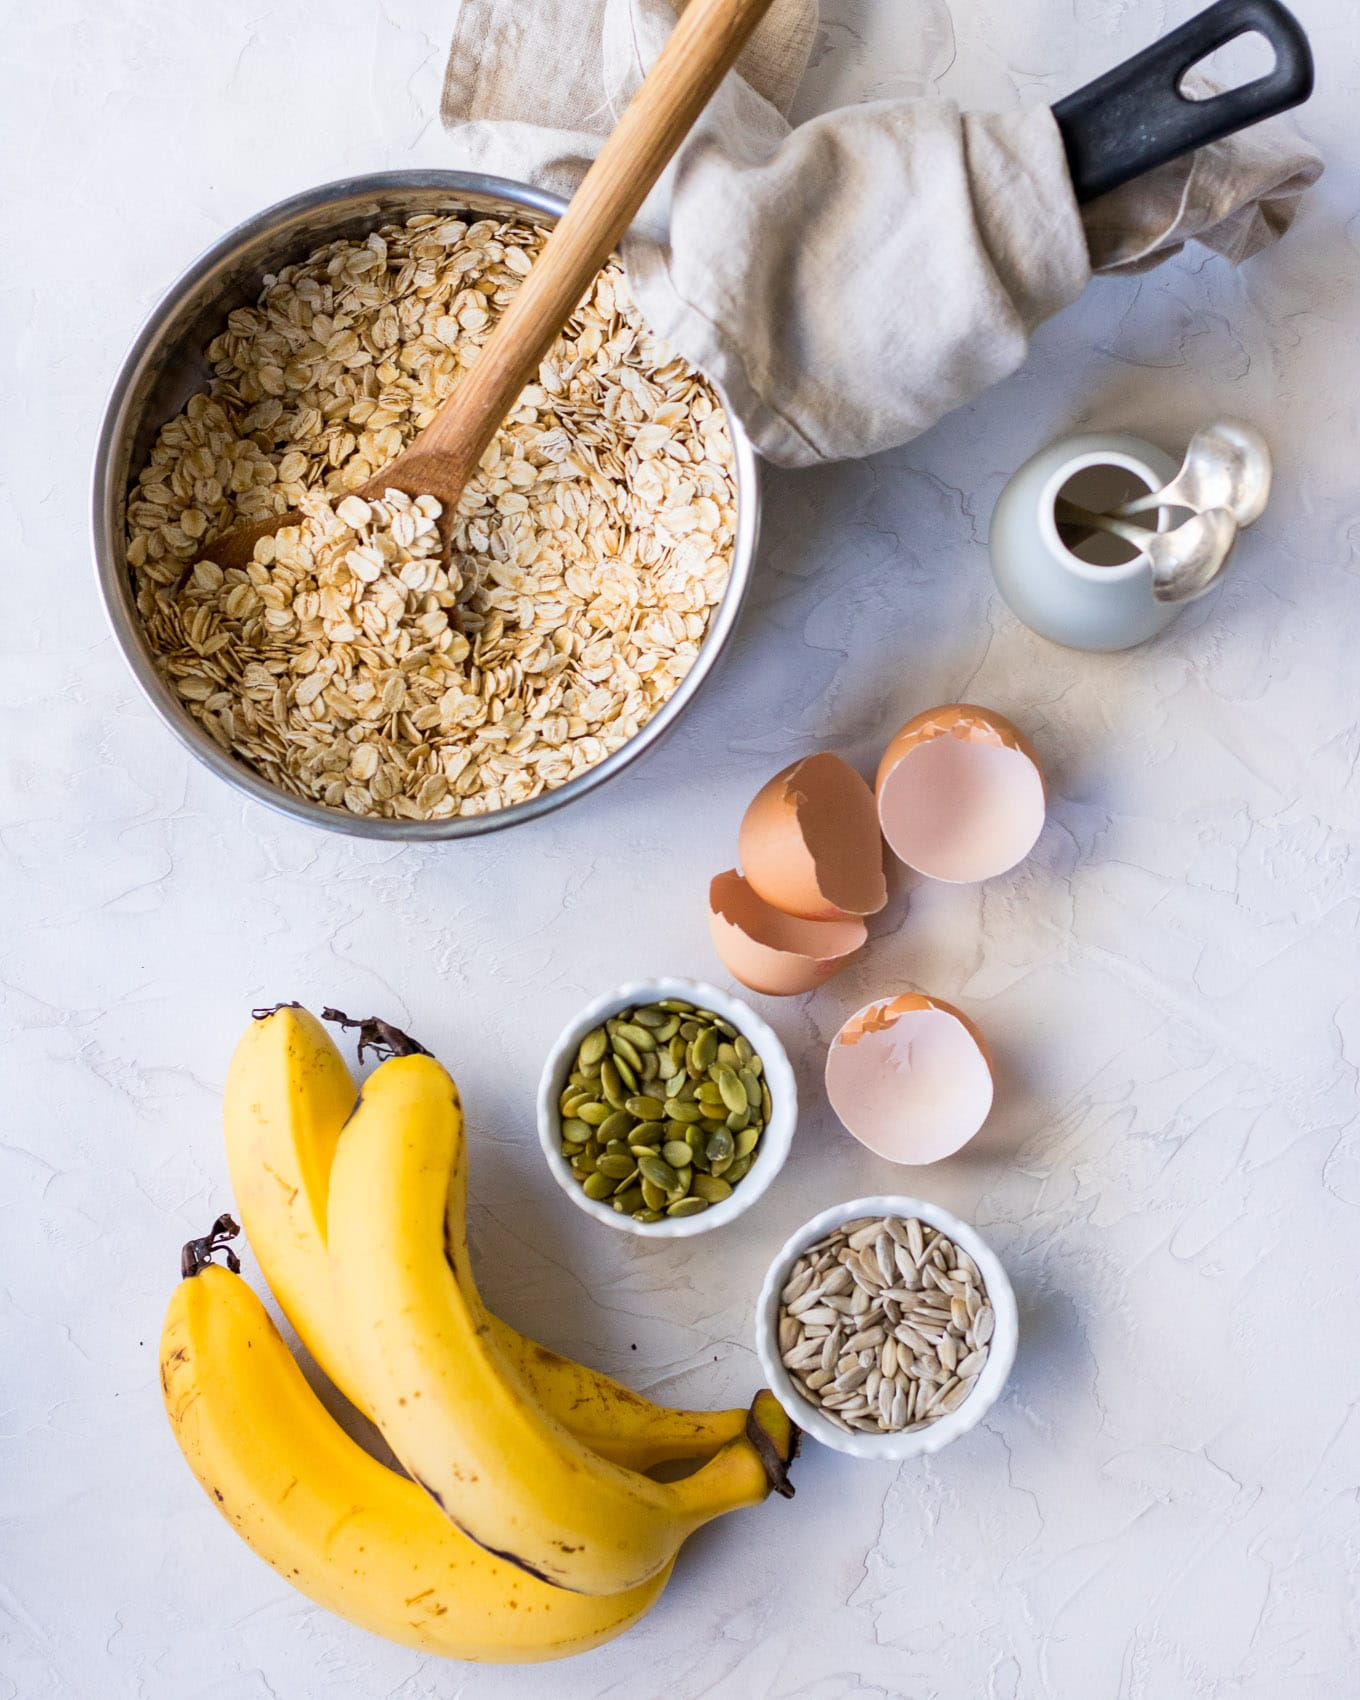 Protein Packed Banana Porridge main ingredients